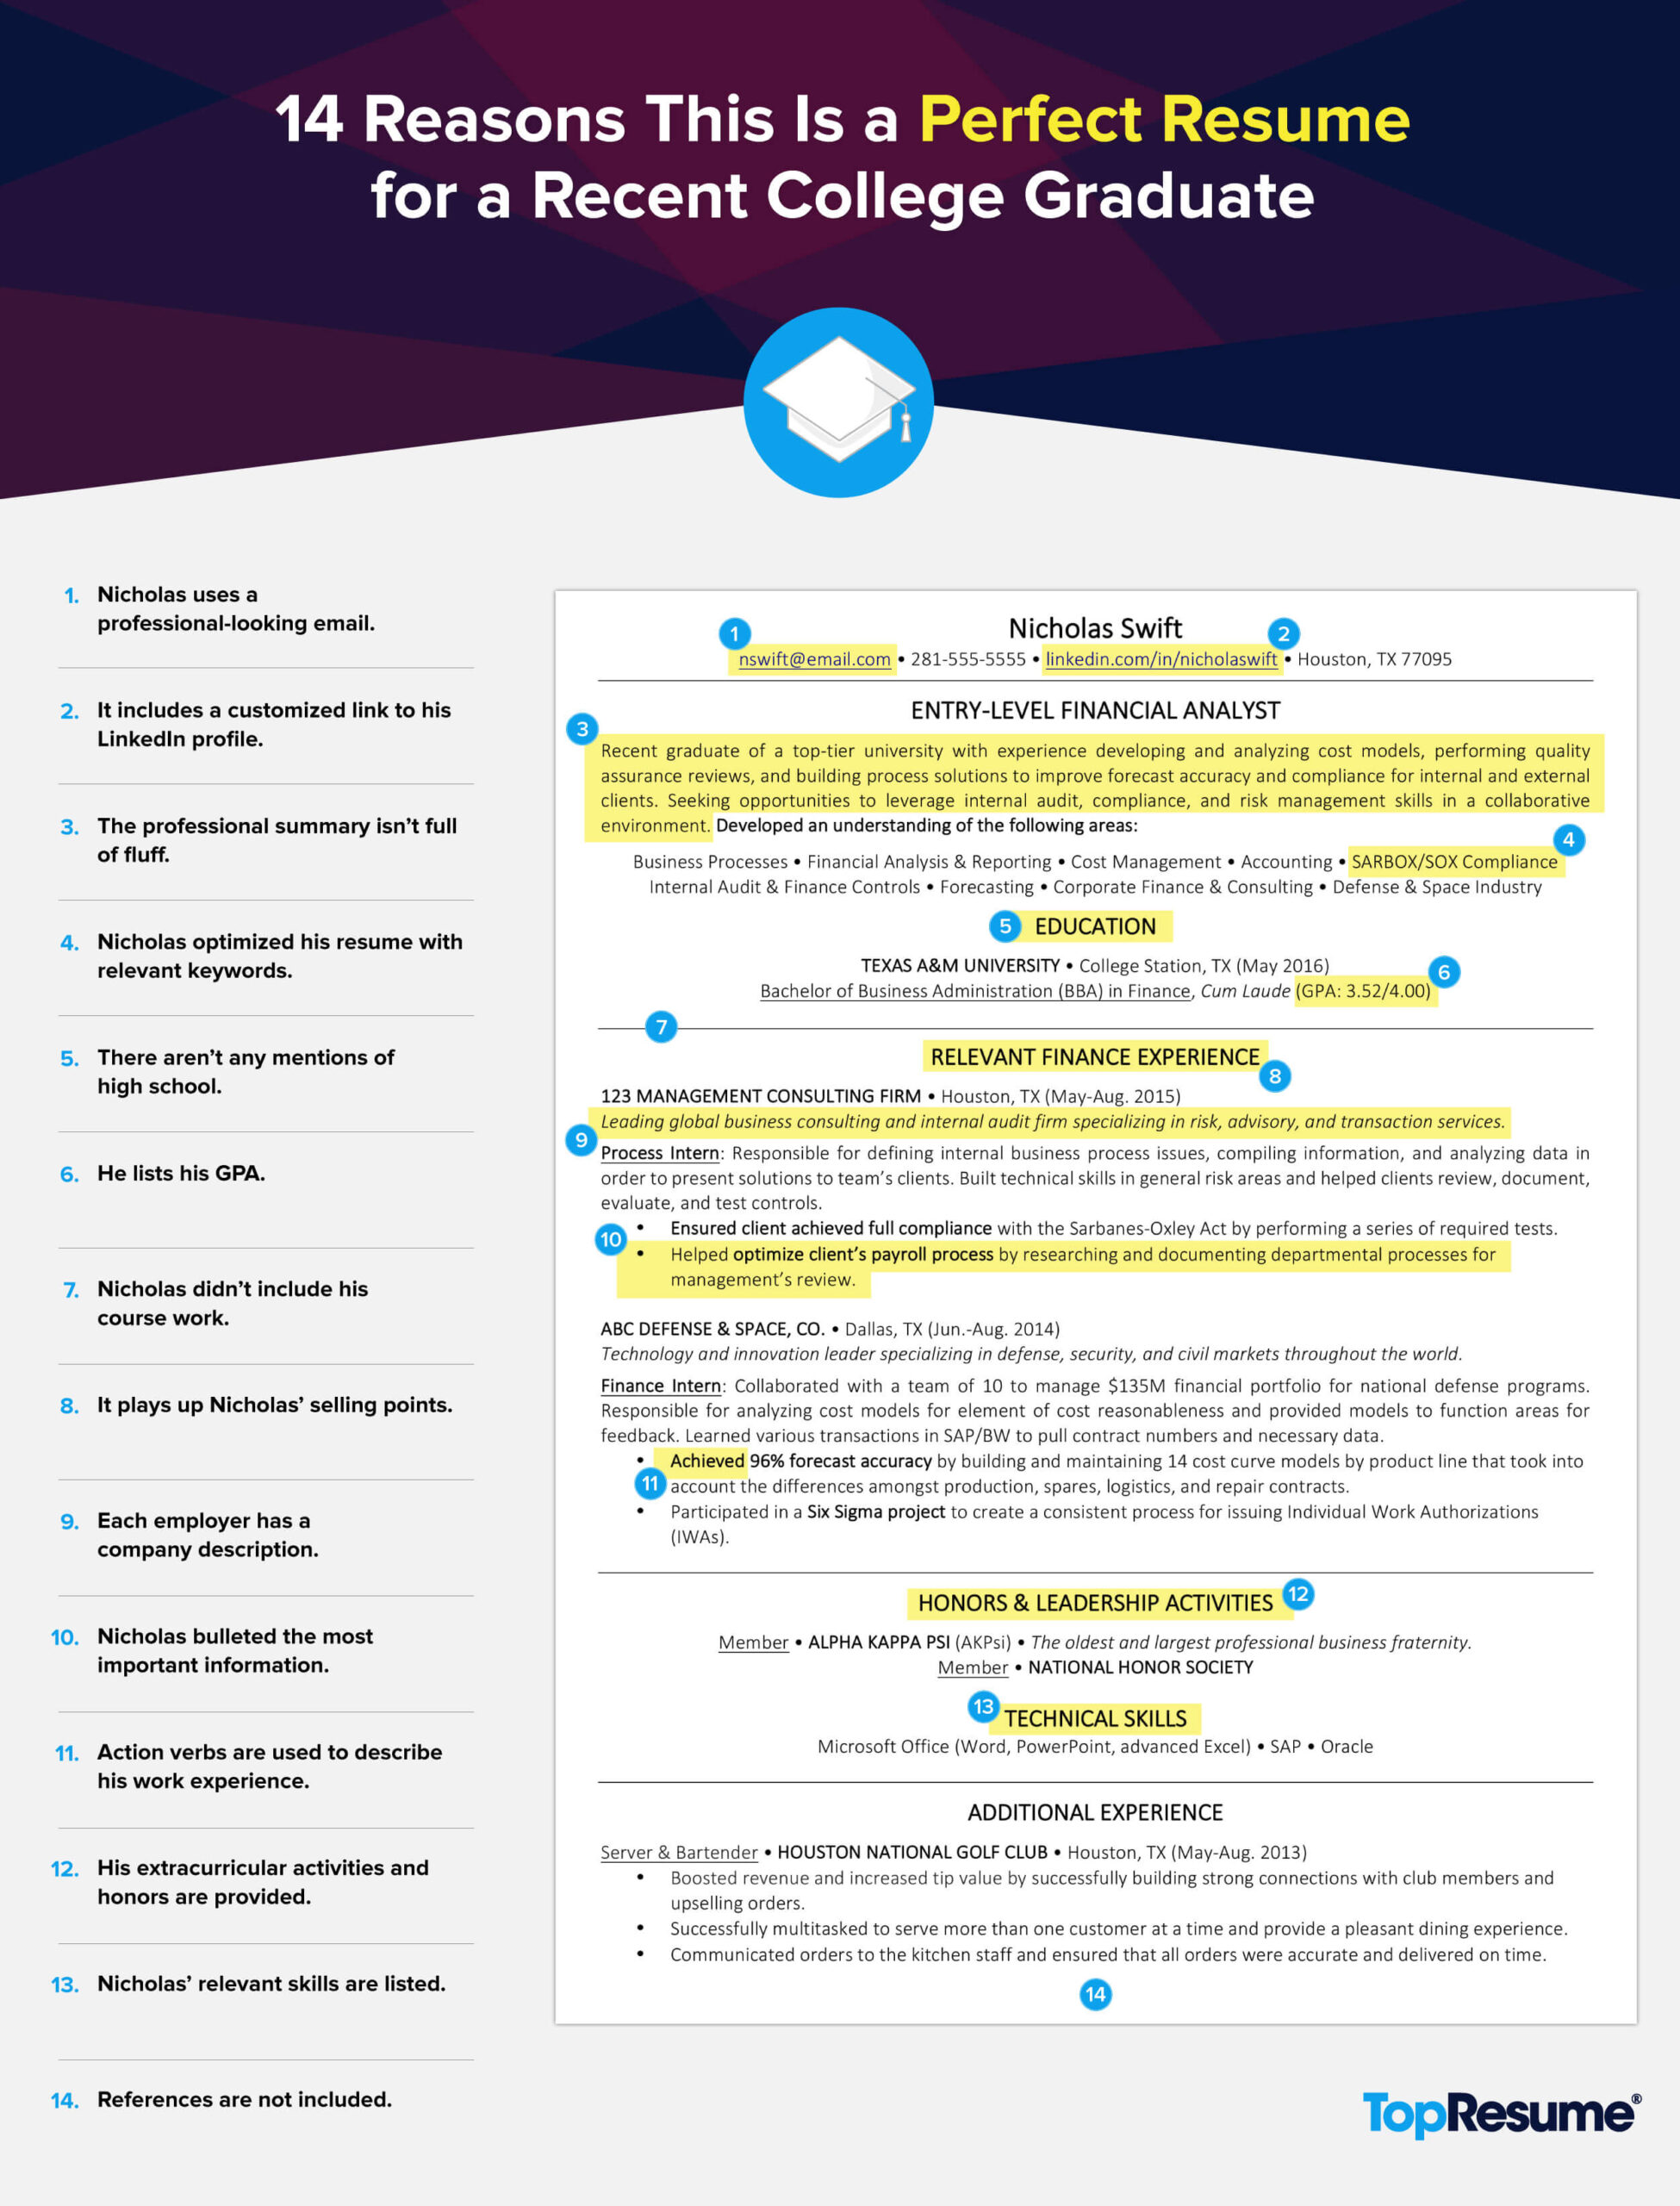 reasons this is perfect recent college graduate resume topresume example 160516graduate Resume Graduate Resume Example